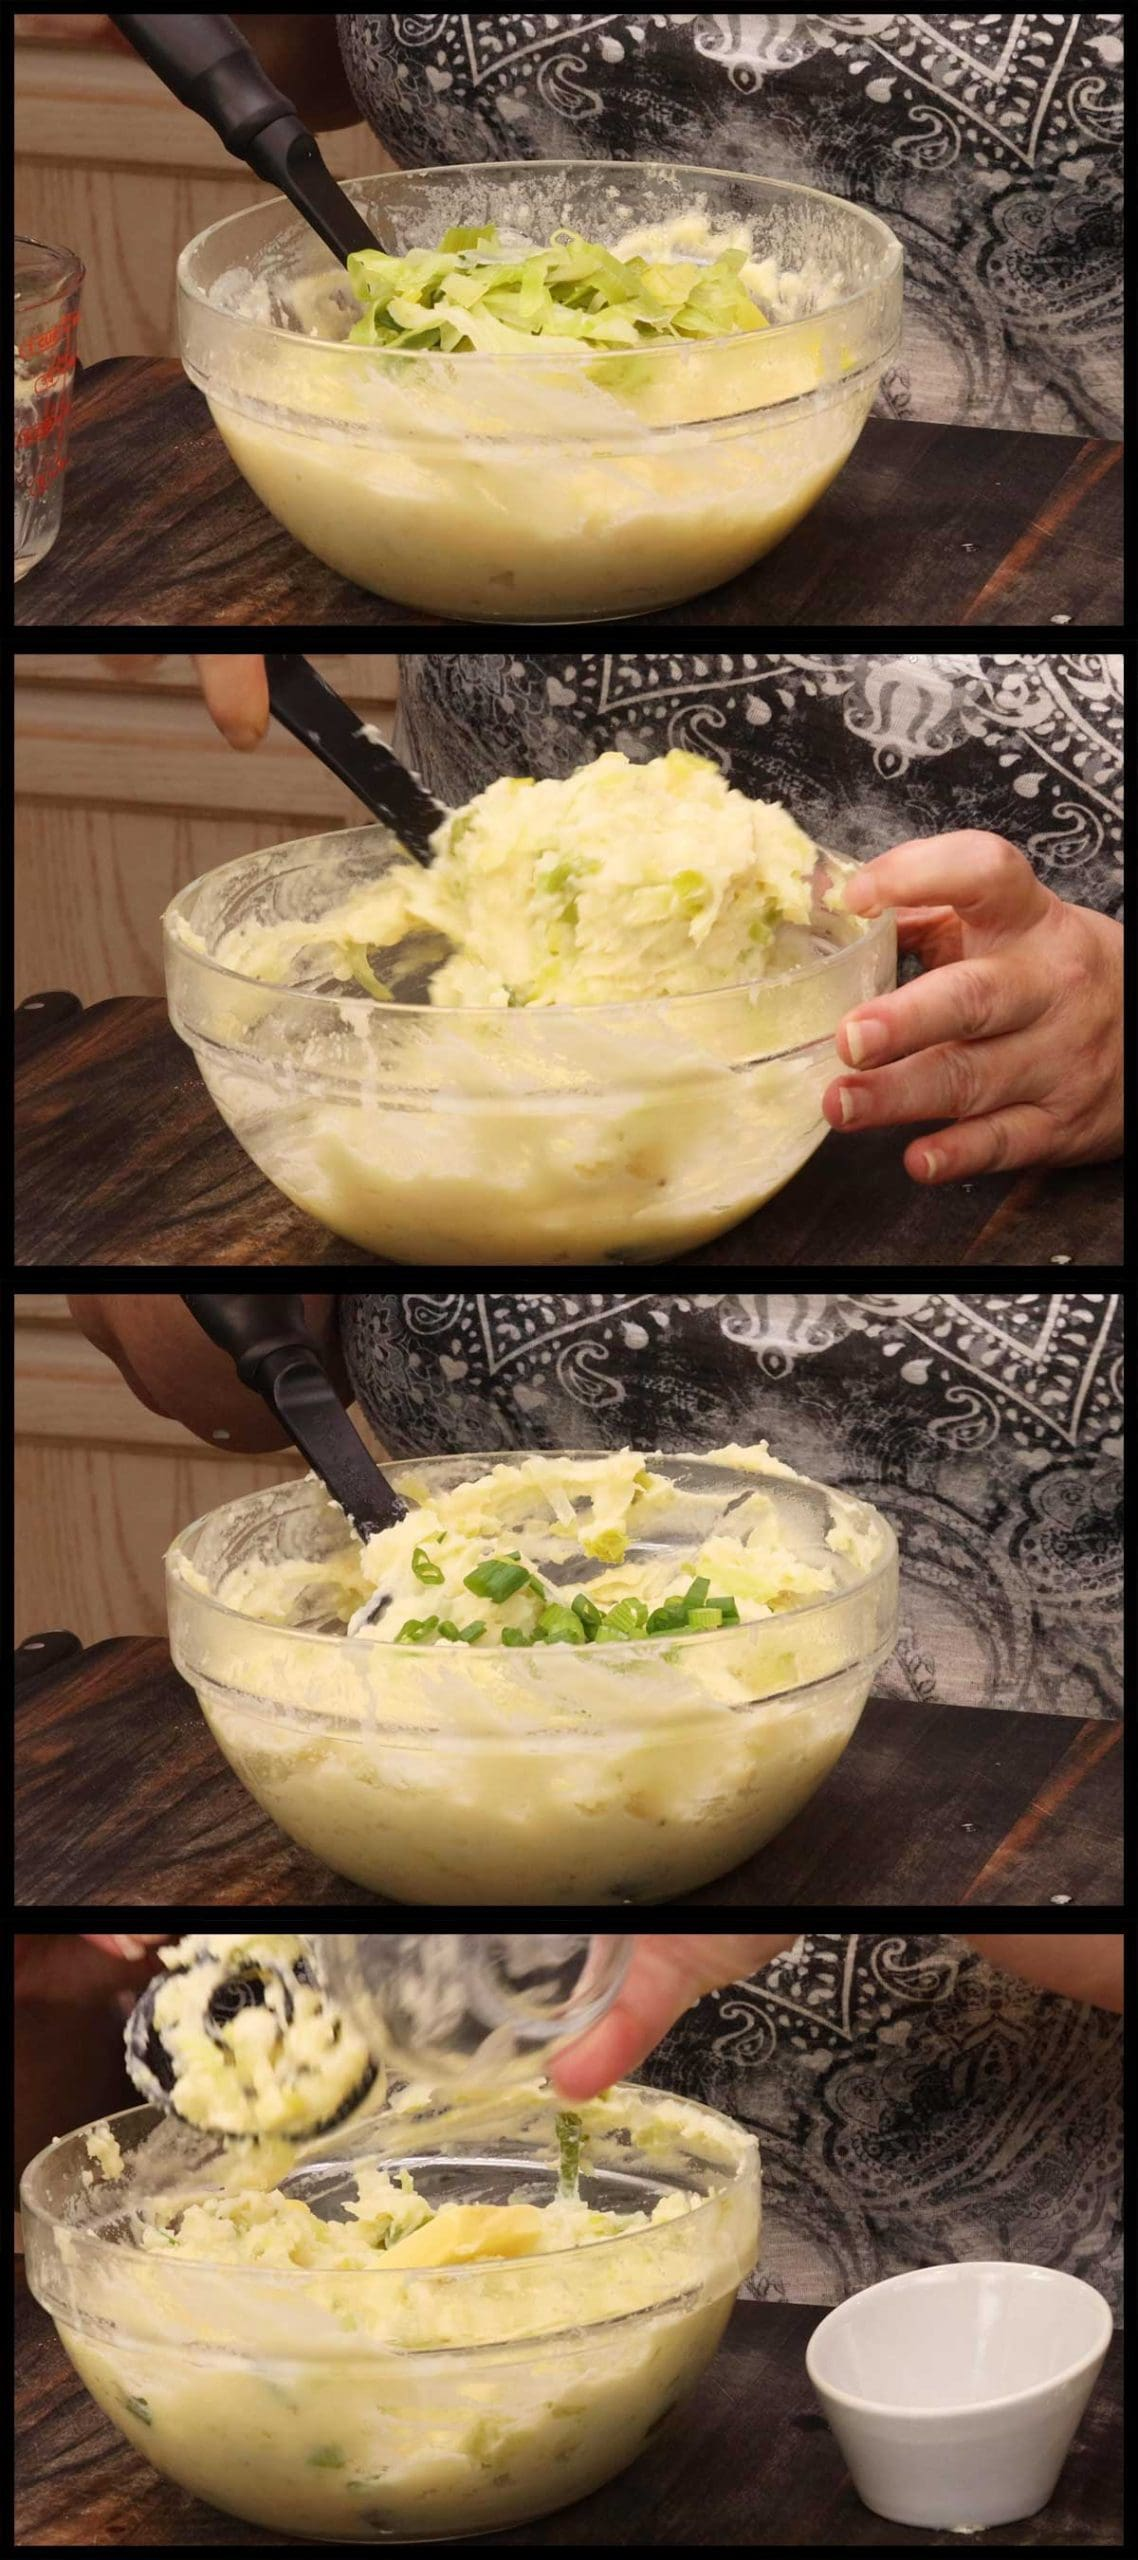 Mixing vegetables into colcannon